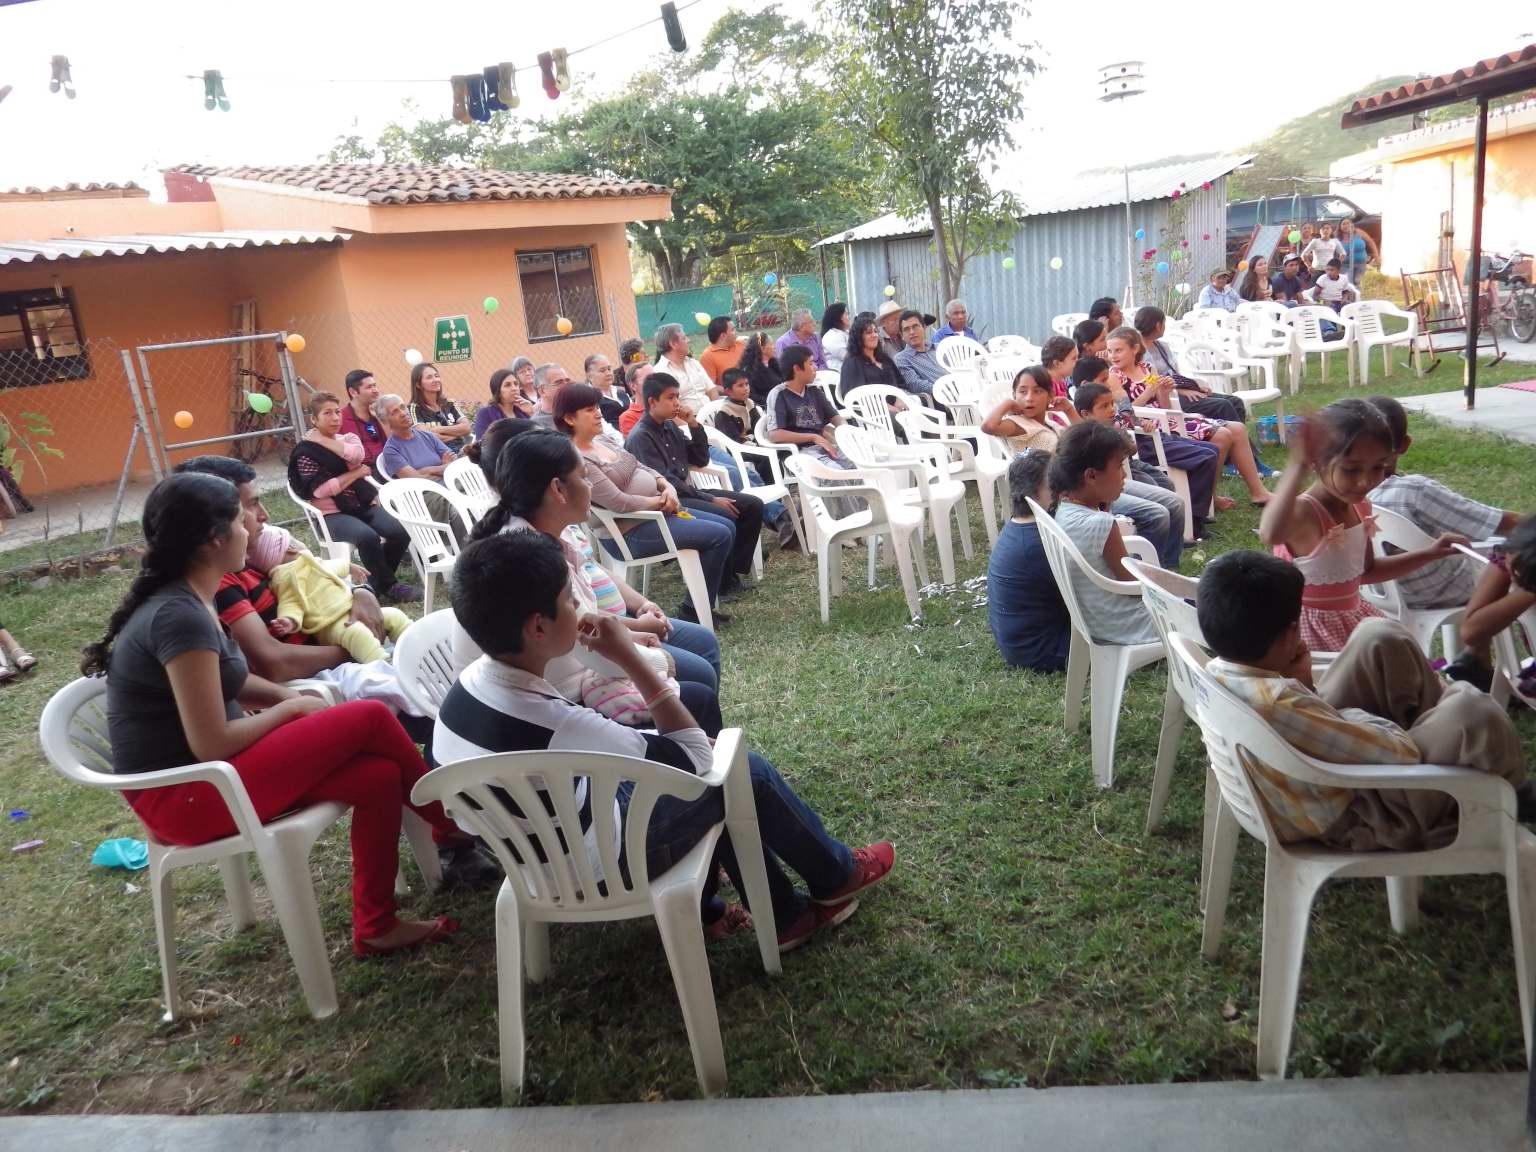 We had a good turn-out, including dear friends from a church in Guadalajara.  Everyone went home content.